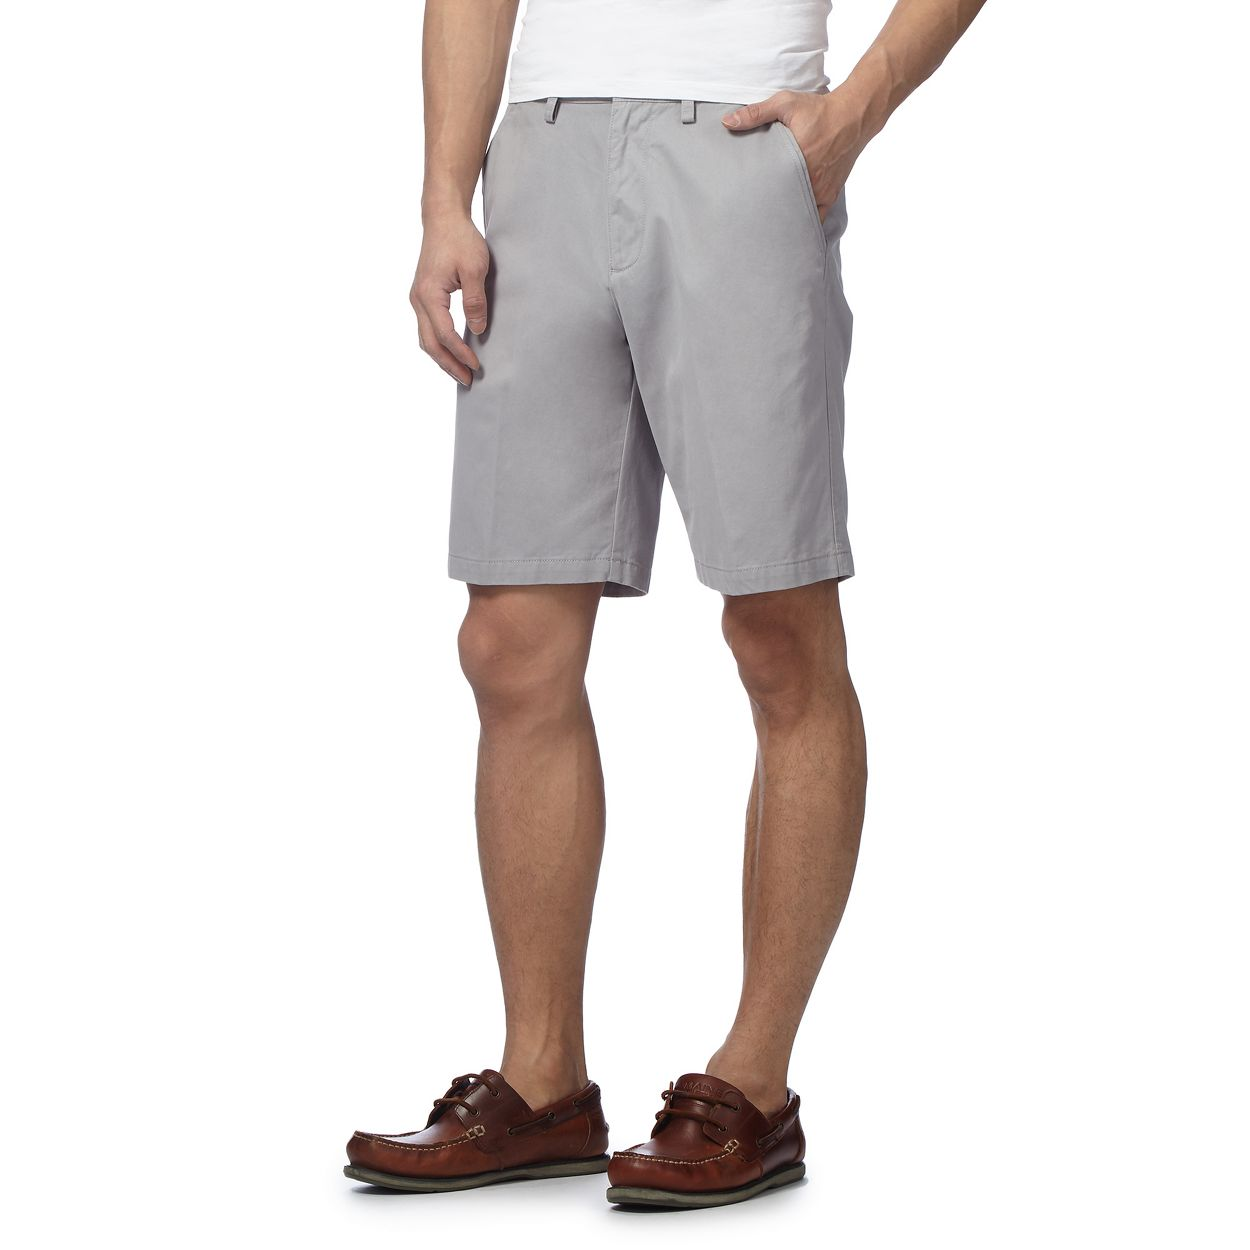 Maine New England Pale Grey Pale grey chino shorts